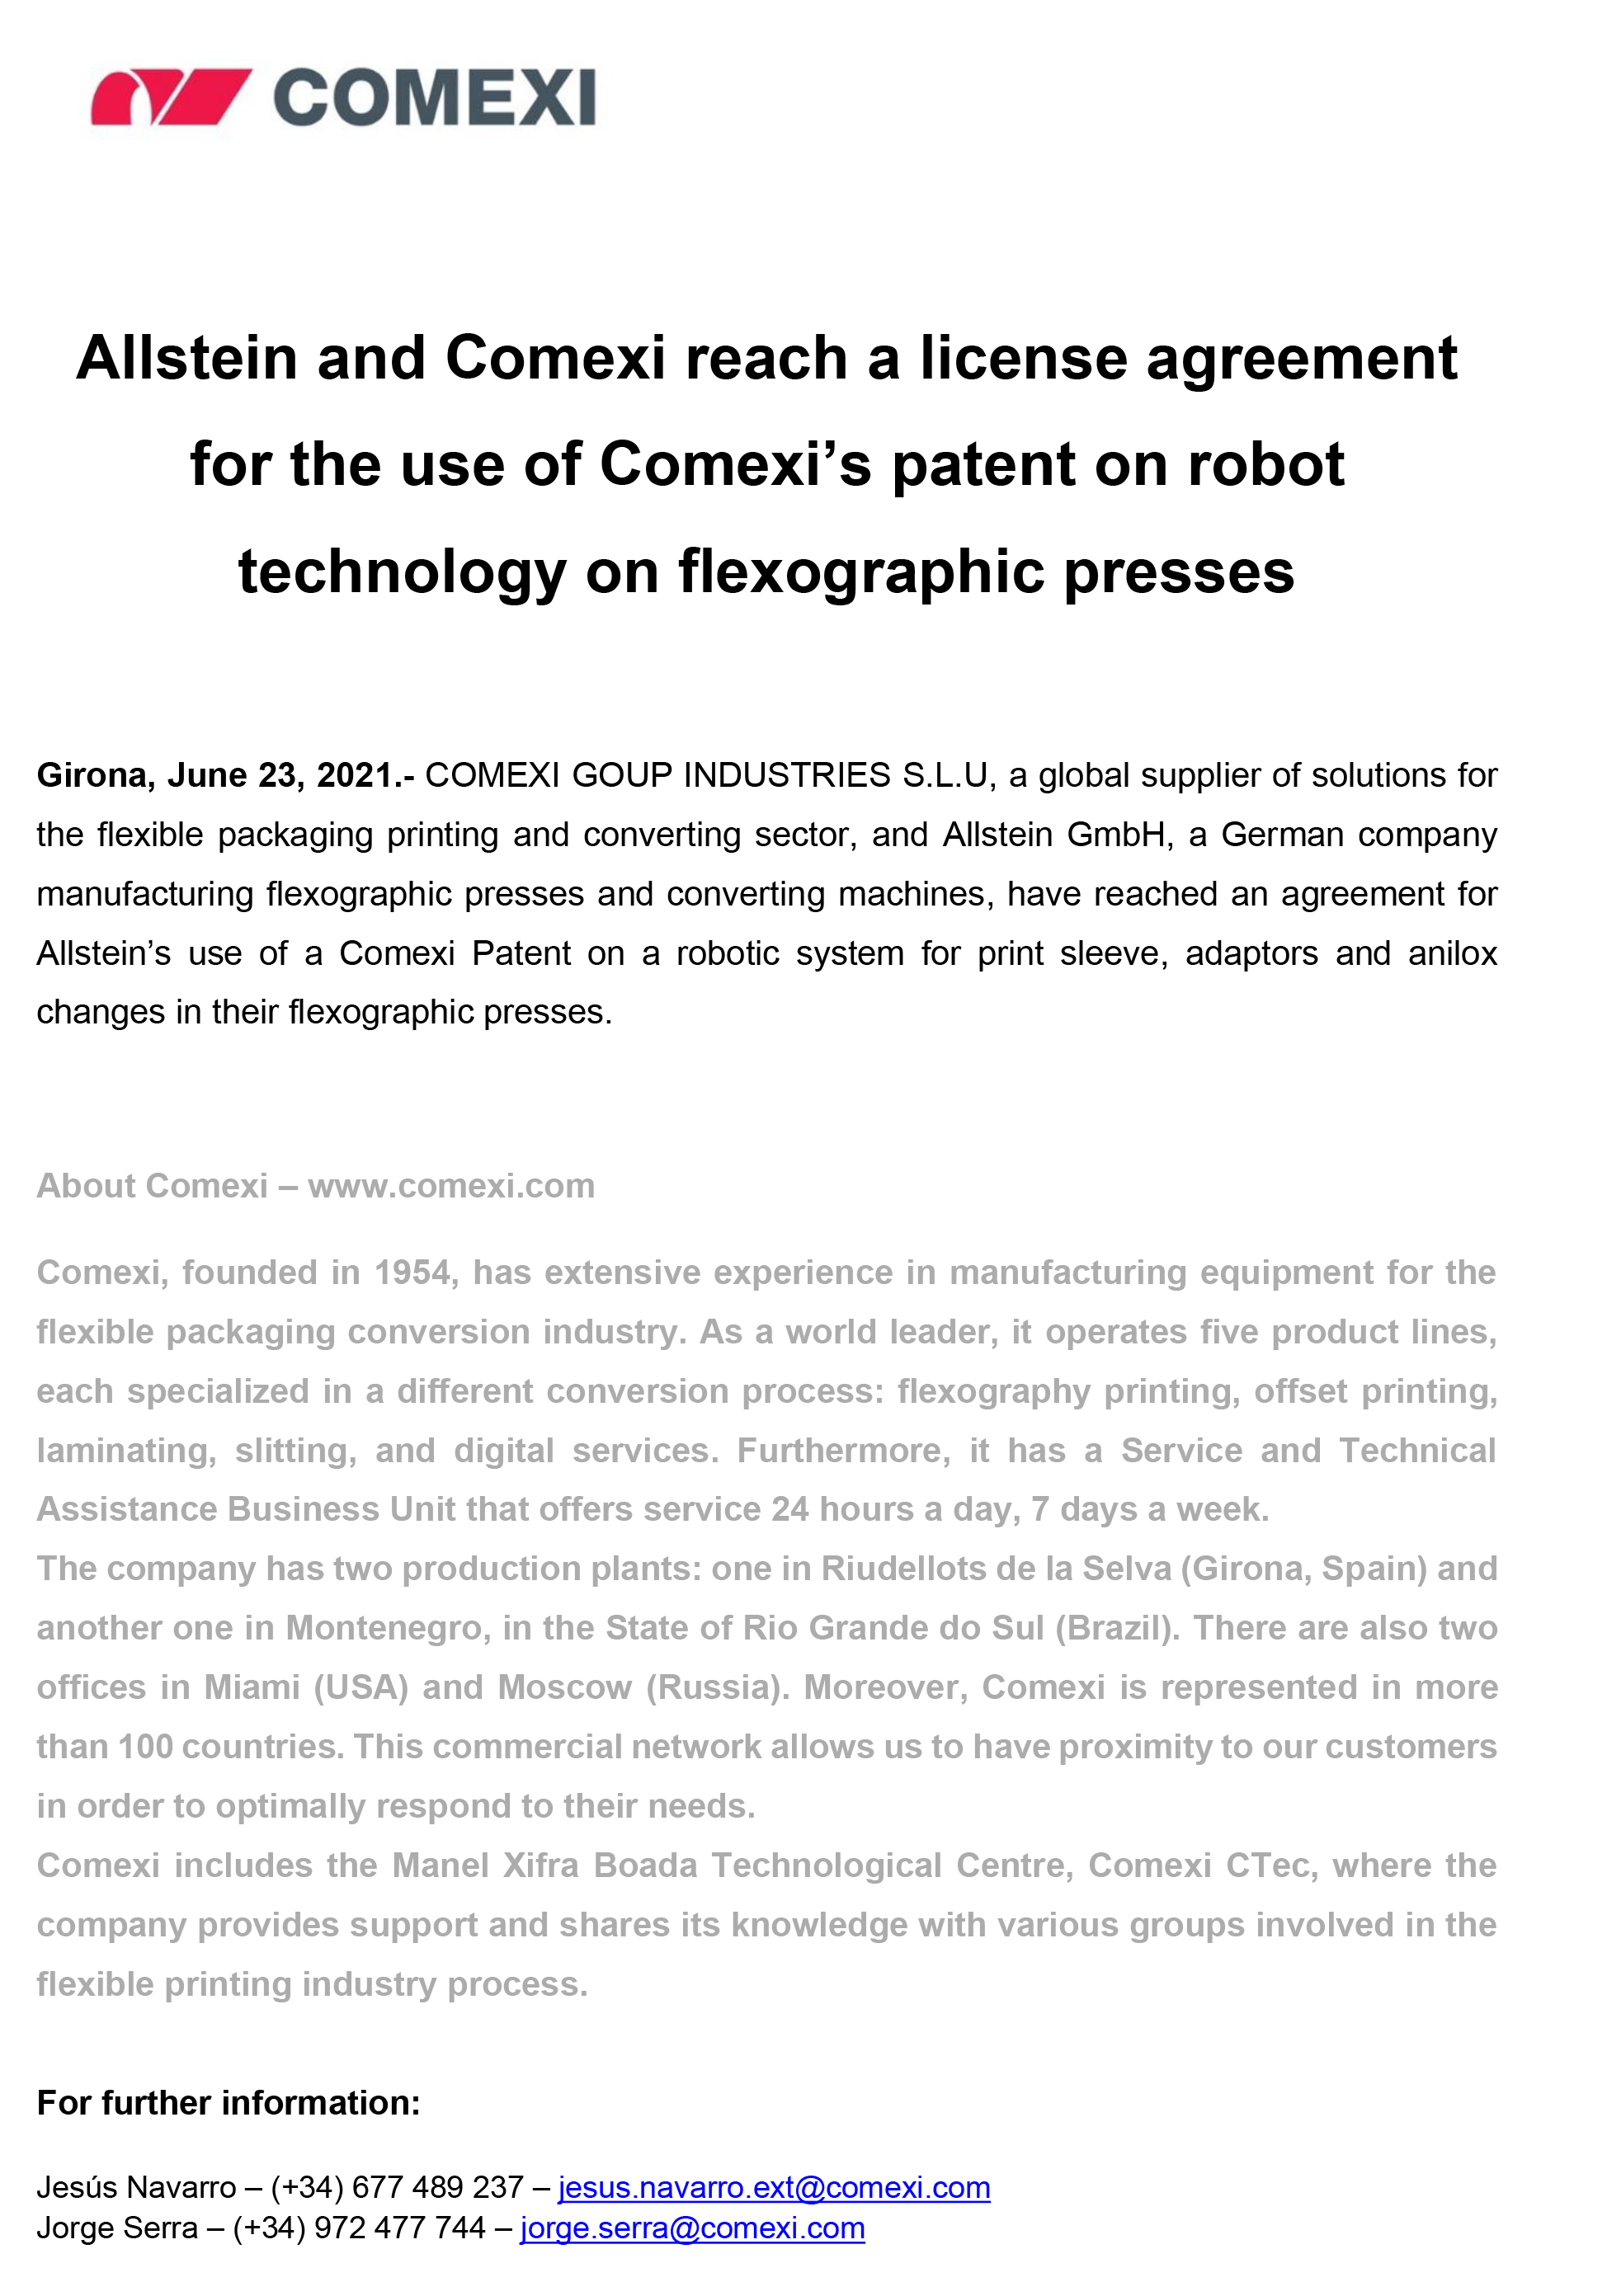 Allstein and Comexi reach a license agreement for the use of Comexi's patent on robot technology on flexographic presses